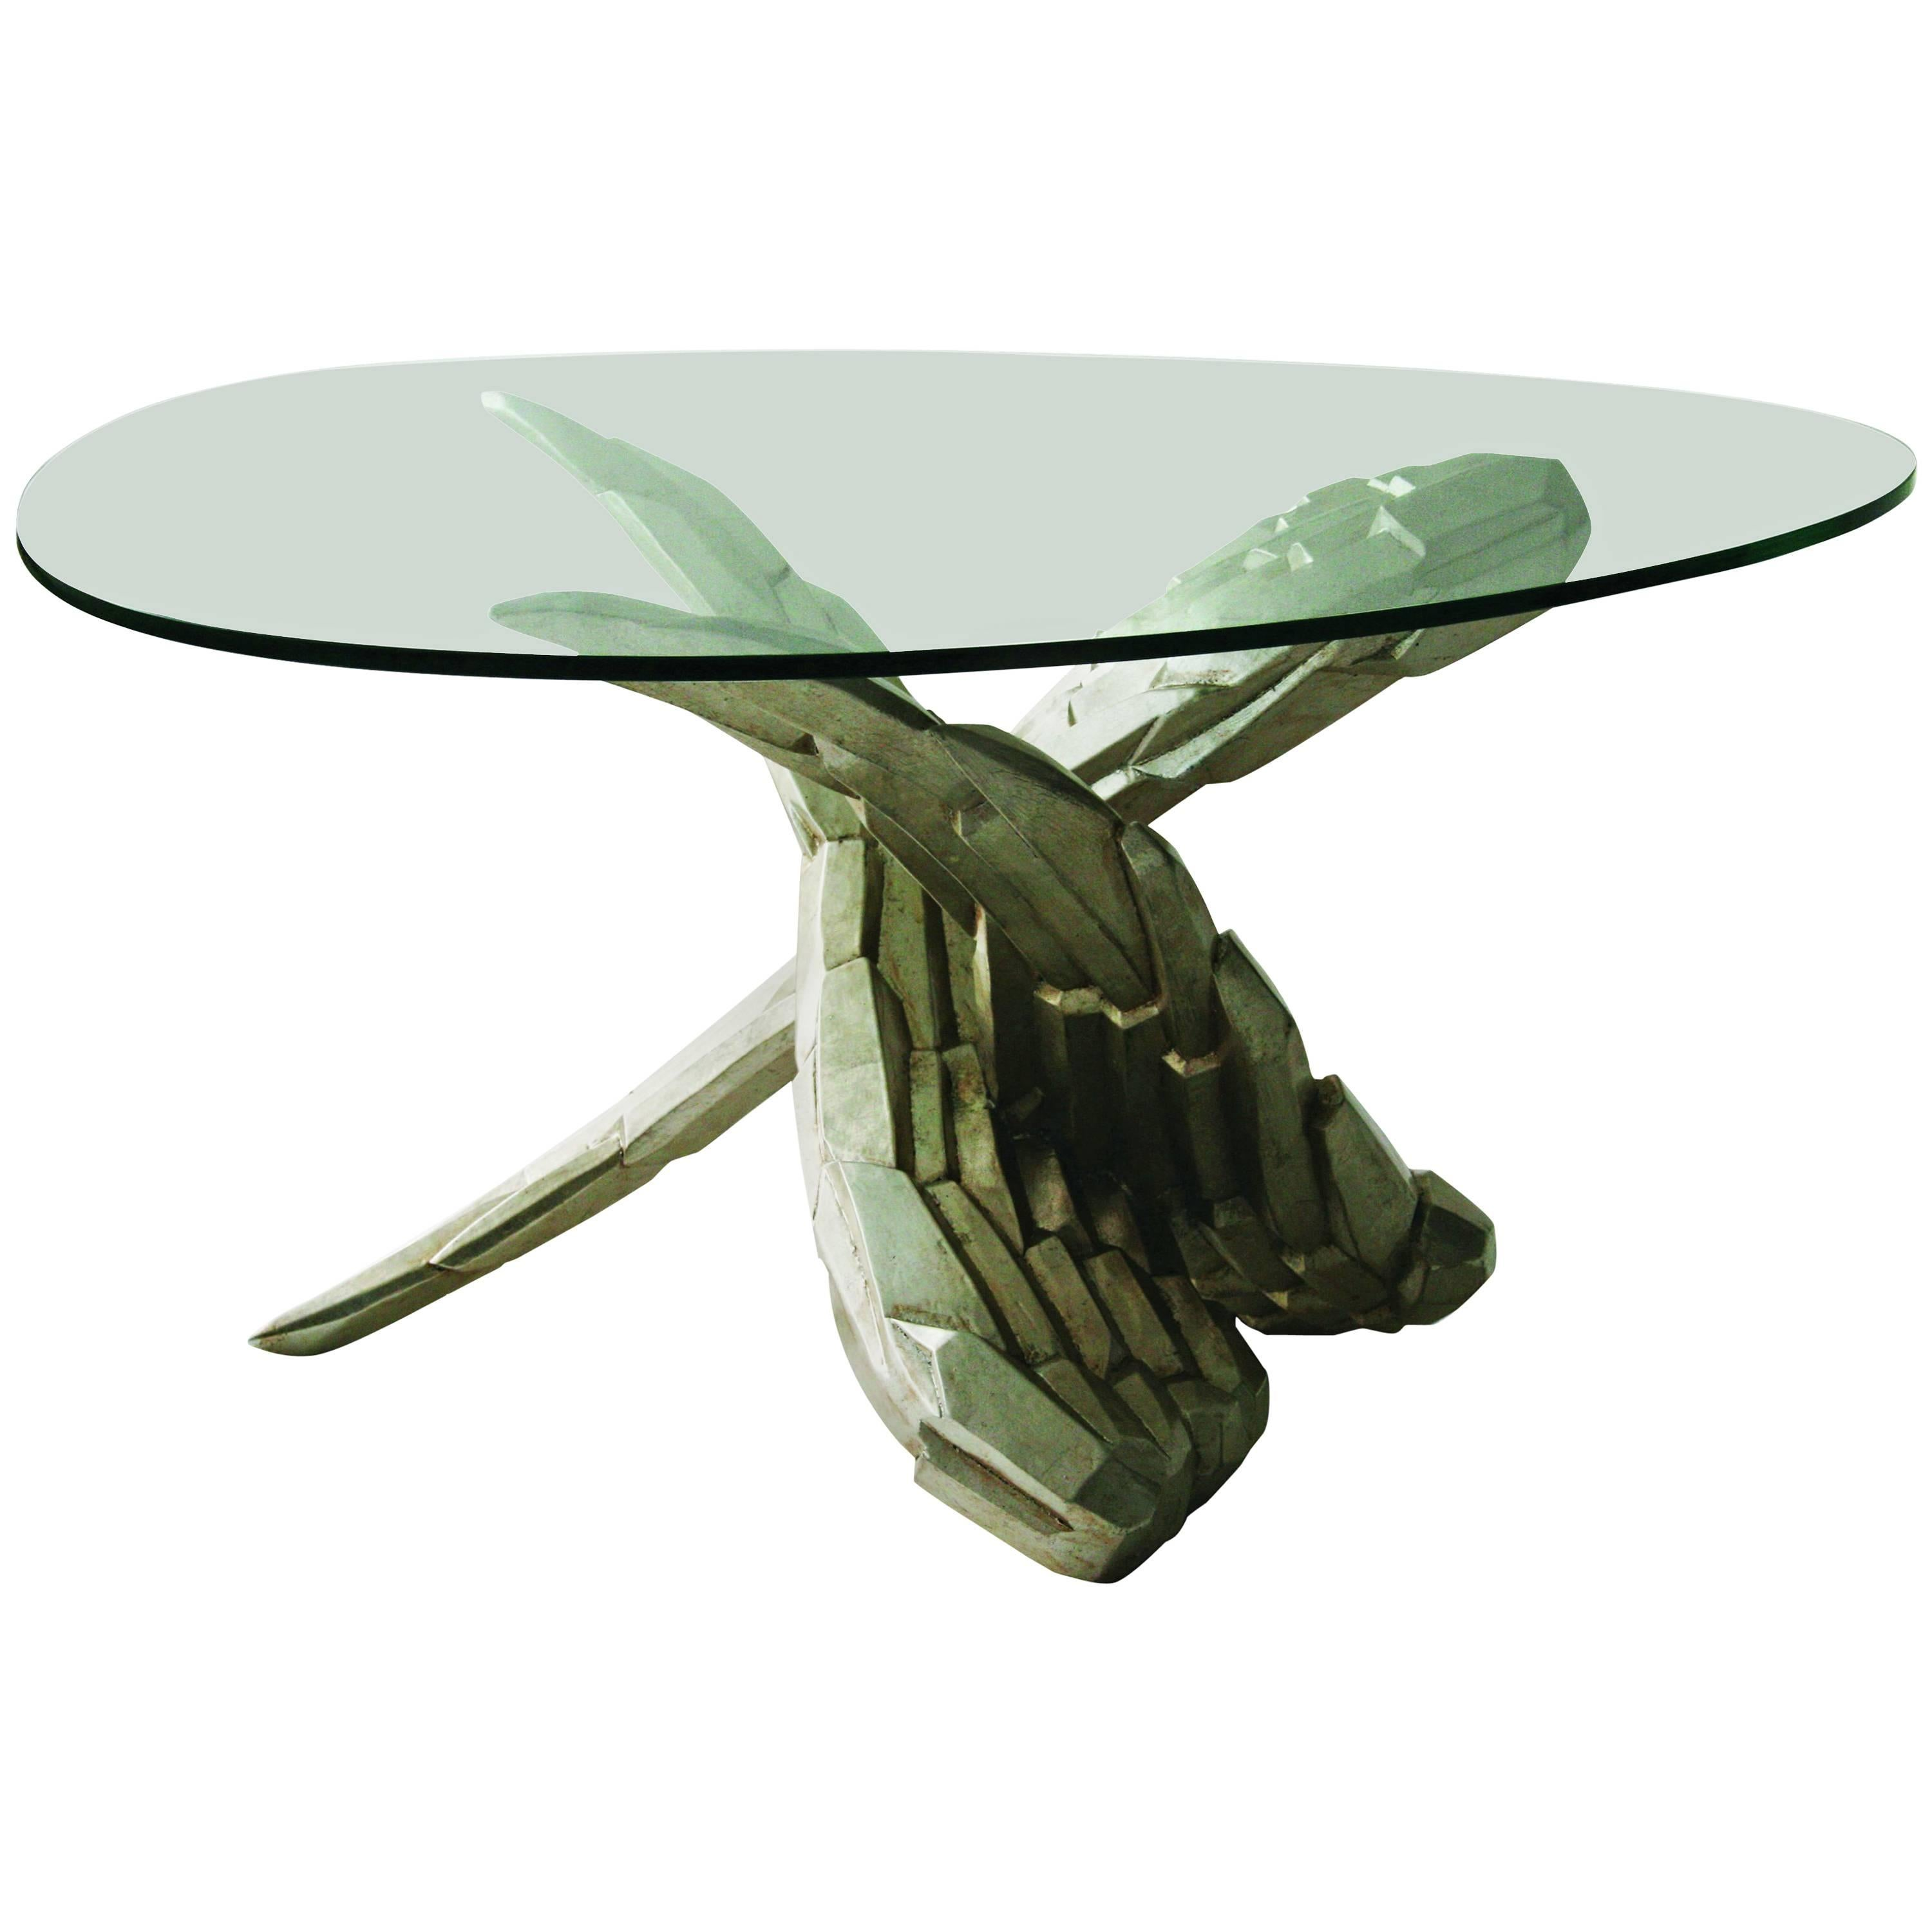 Wing carved table, designed by Nigel Coates